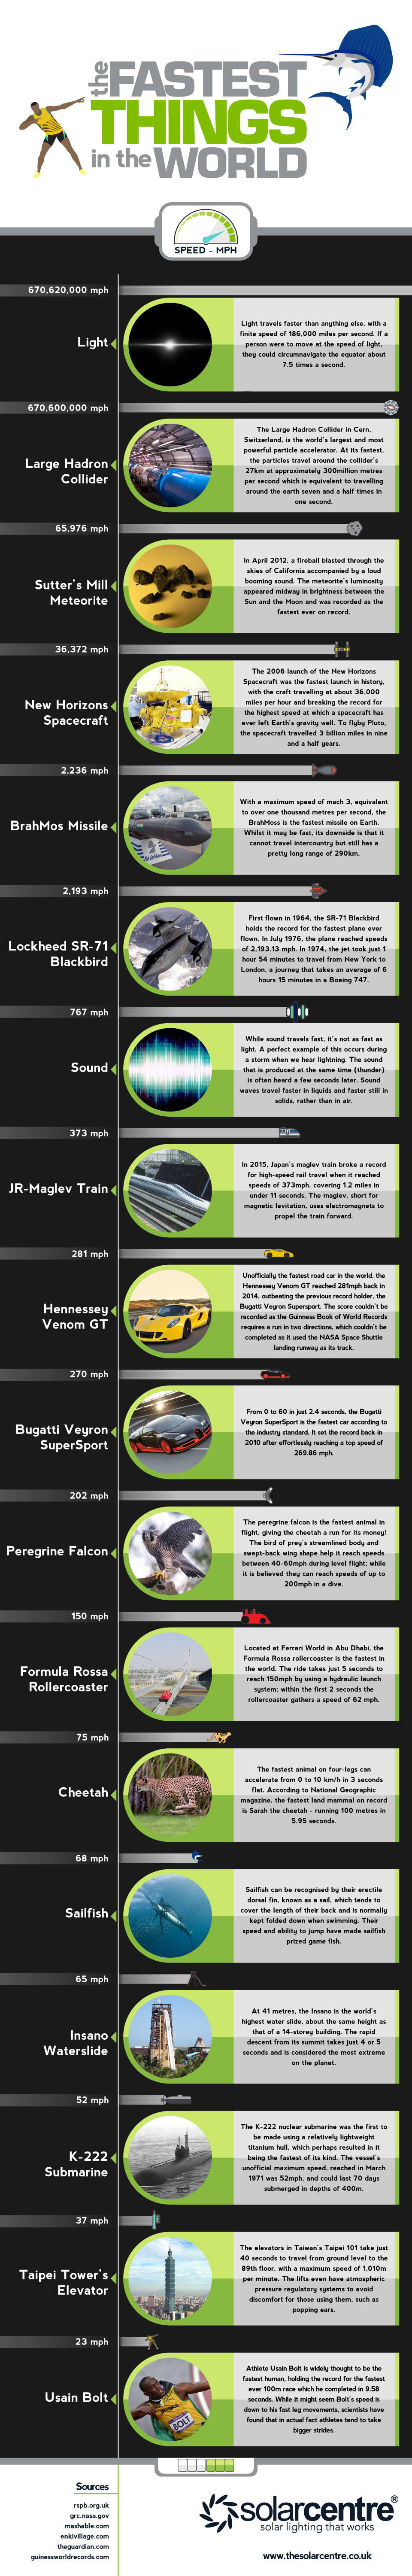 fastest-things-in-the-world